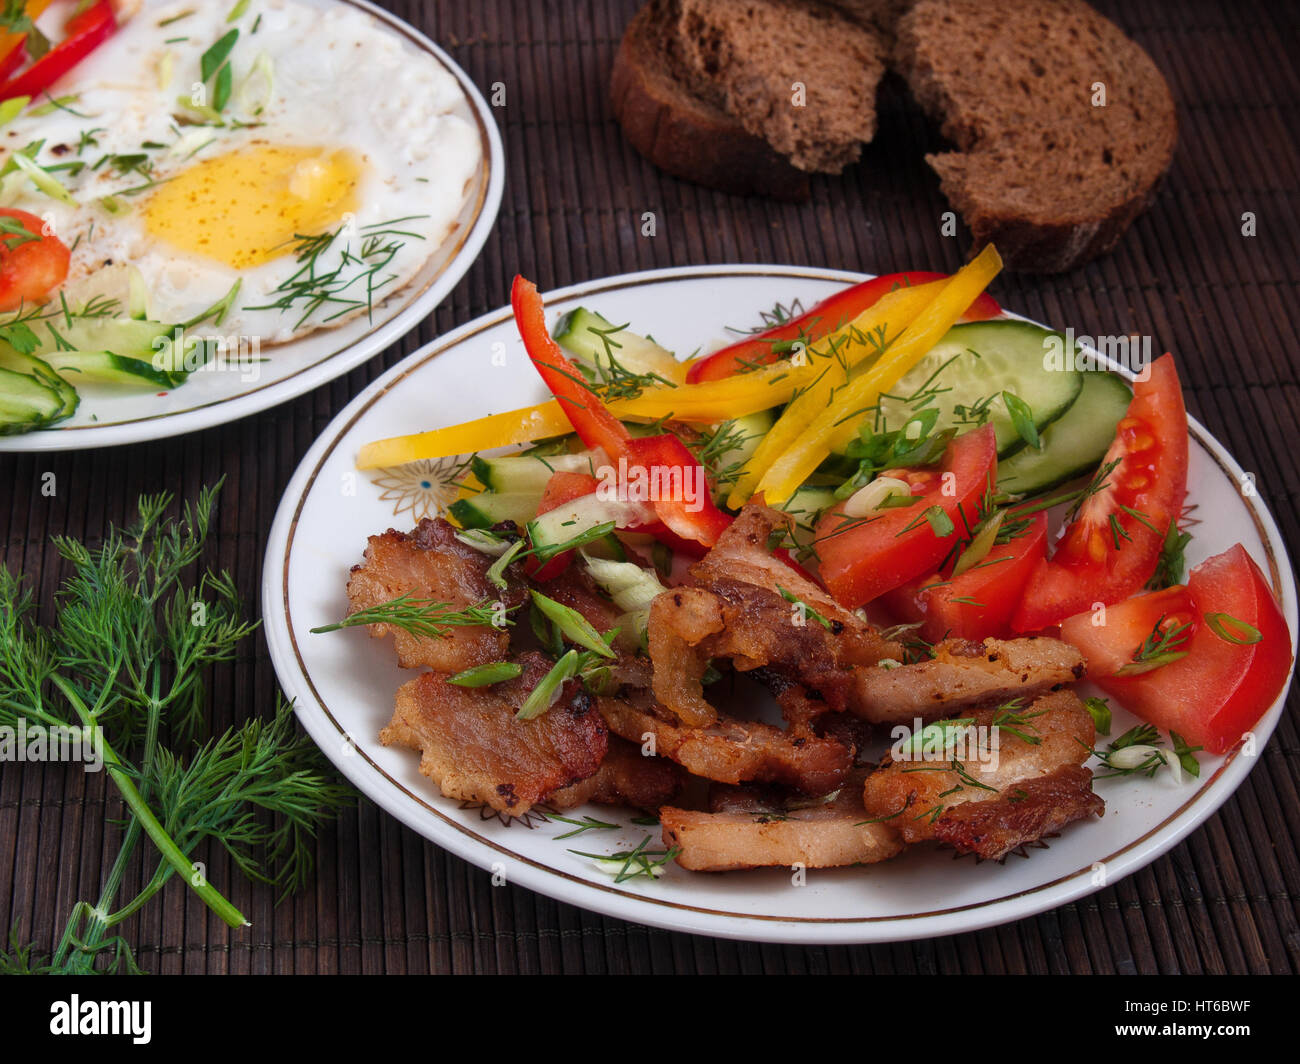 Fried bacon, eggs and vegetables with pepper, tomato and greens on white plates on a table on a bamboo napkin Stock Photo